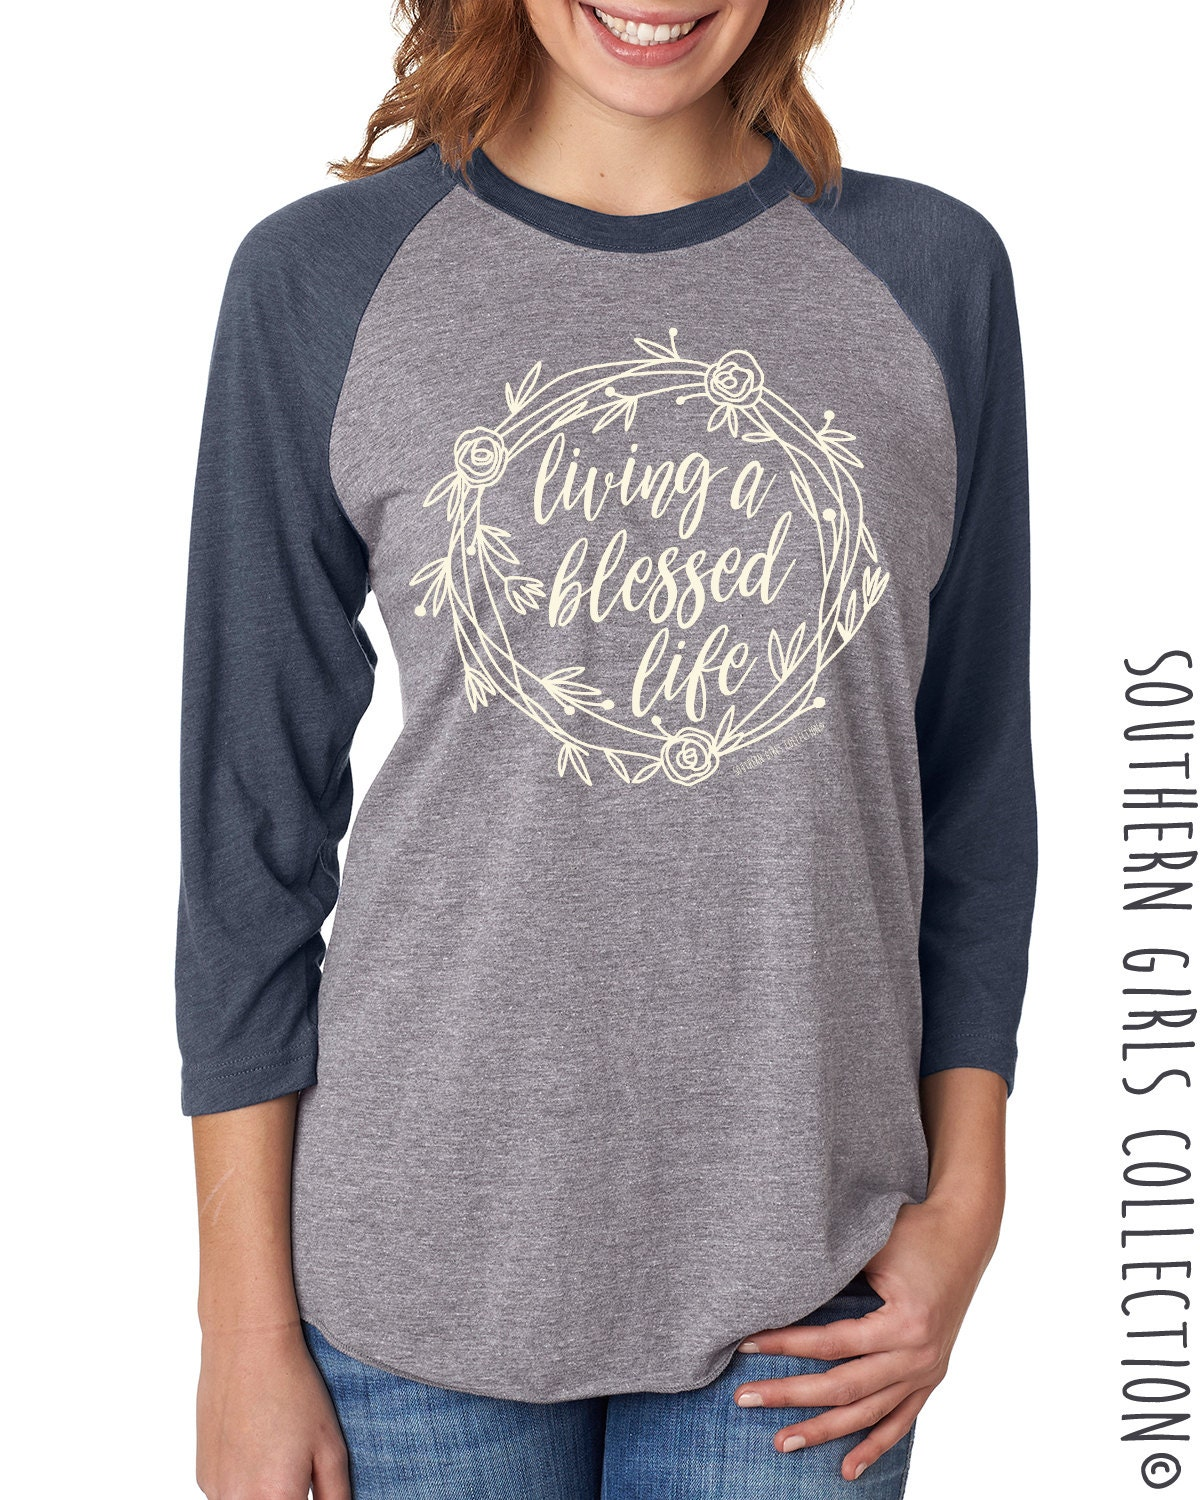 71e2cef2 Living a Blessed Life Shirt - Blessed Raglan - Graphic Design T-shirt -  Typography Baseball Shirt - Southern Girls Collection Sweet Tee